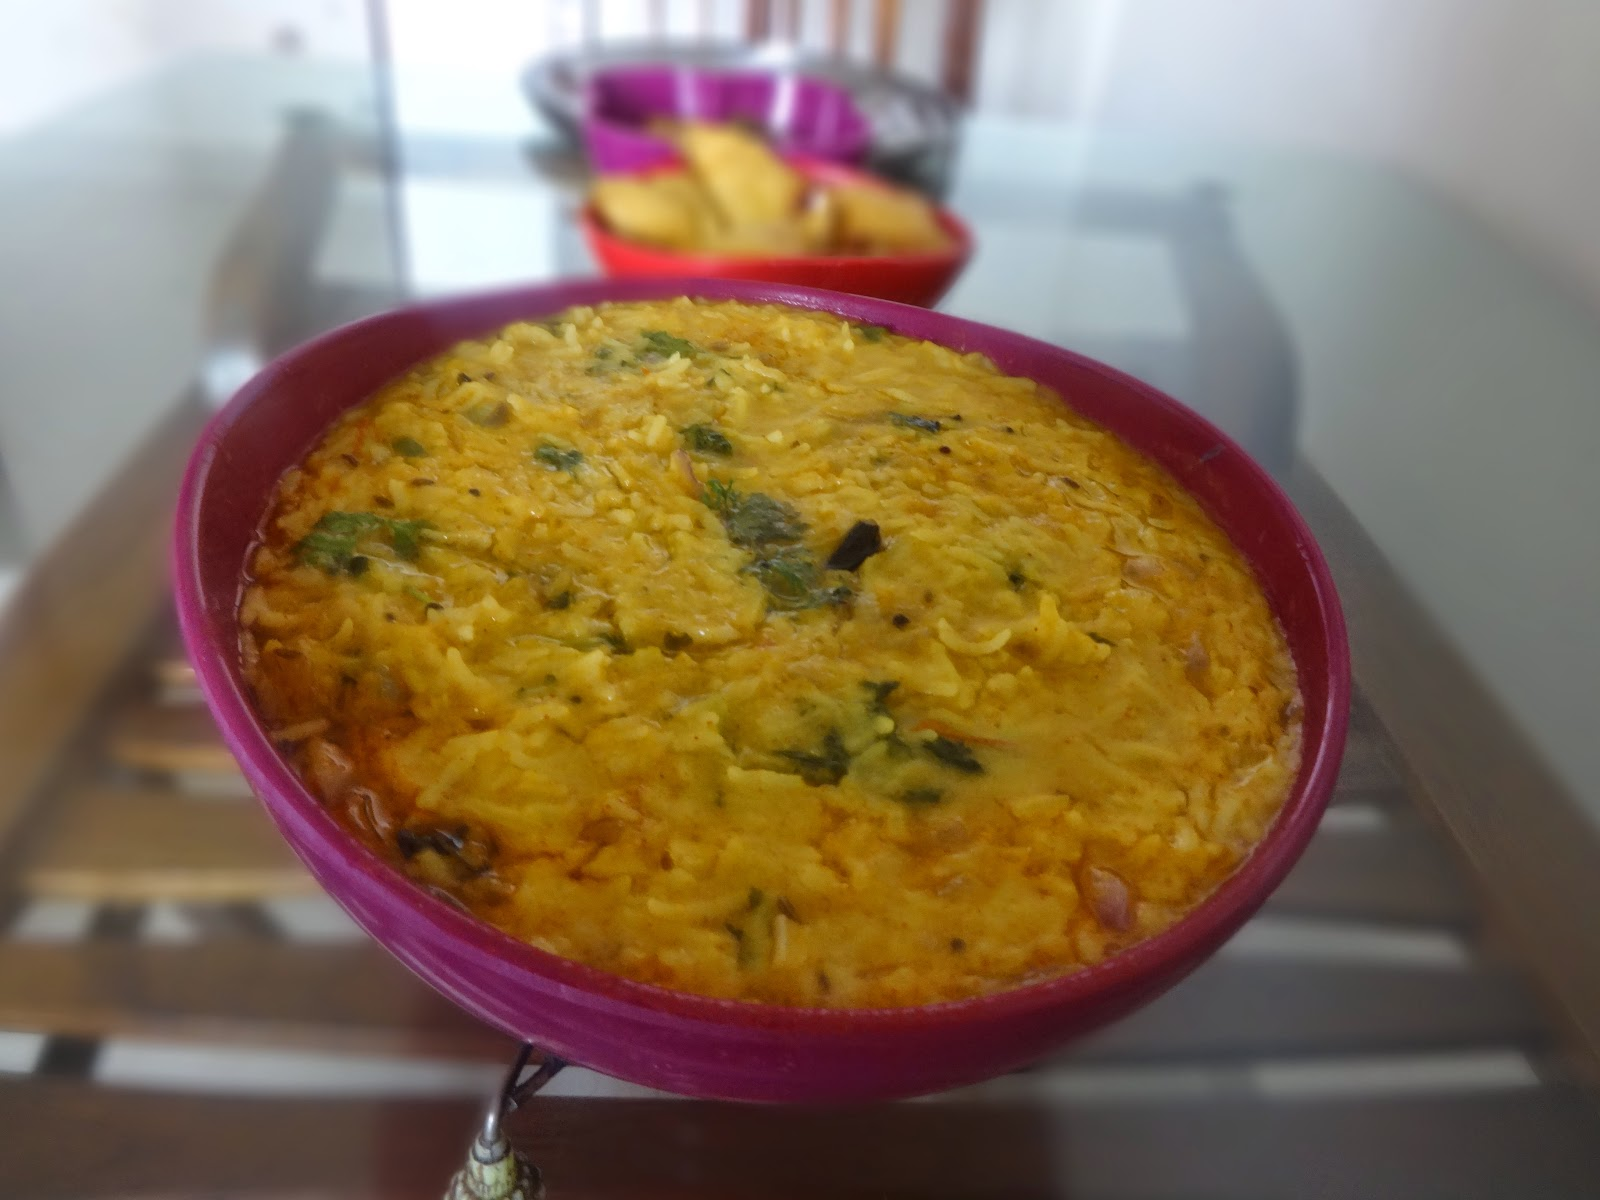 Dal khichdi of this recipe at once when i had this in college canteens favourite among the studentswe make khichdi at home which is made by cooking rice in dal ccuart Choice Image